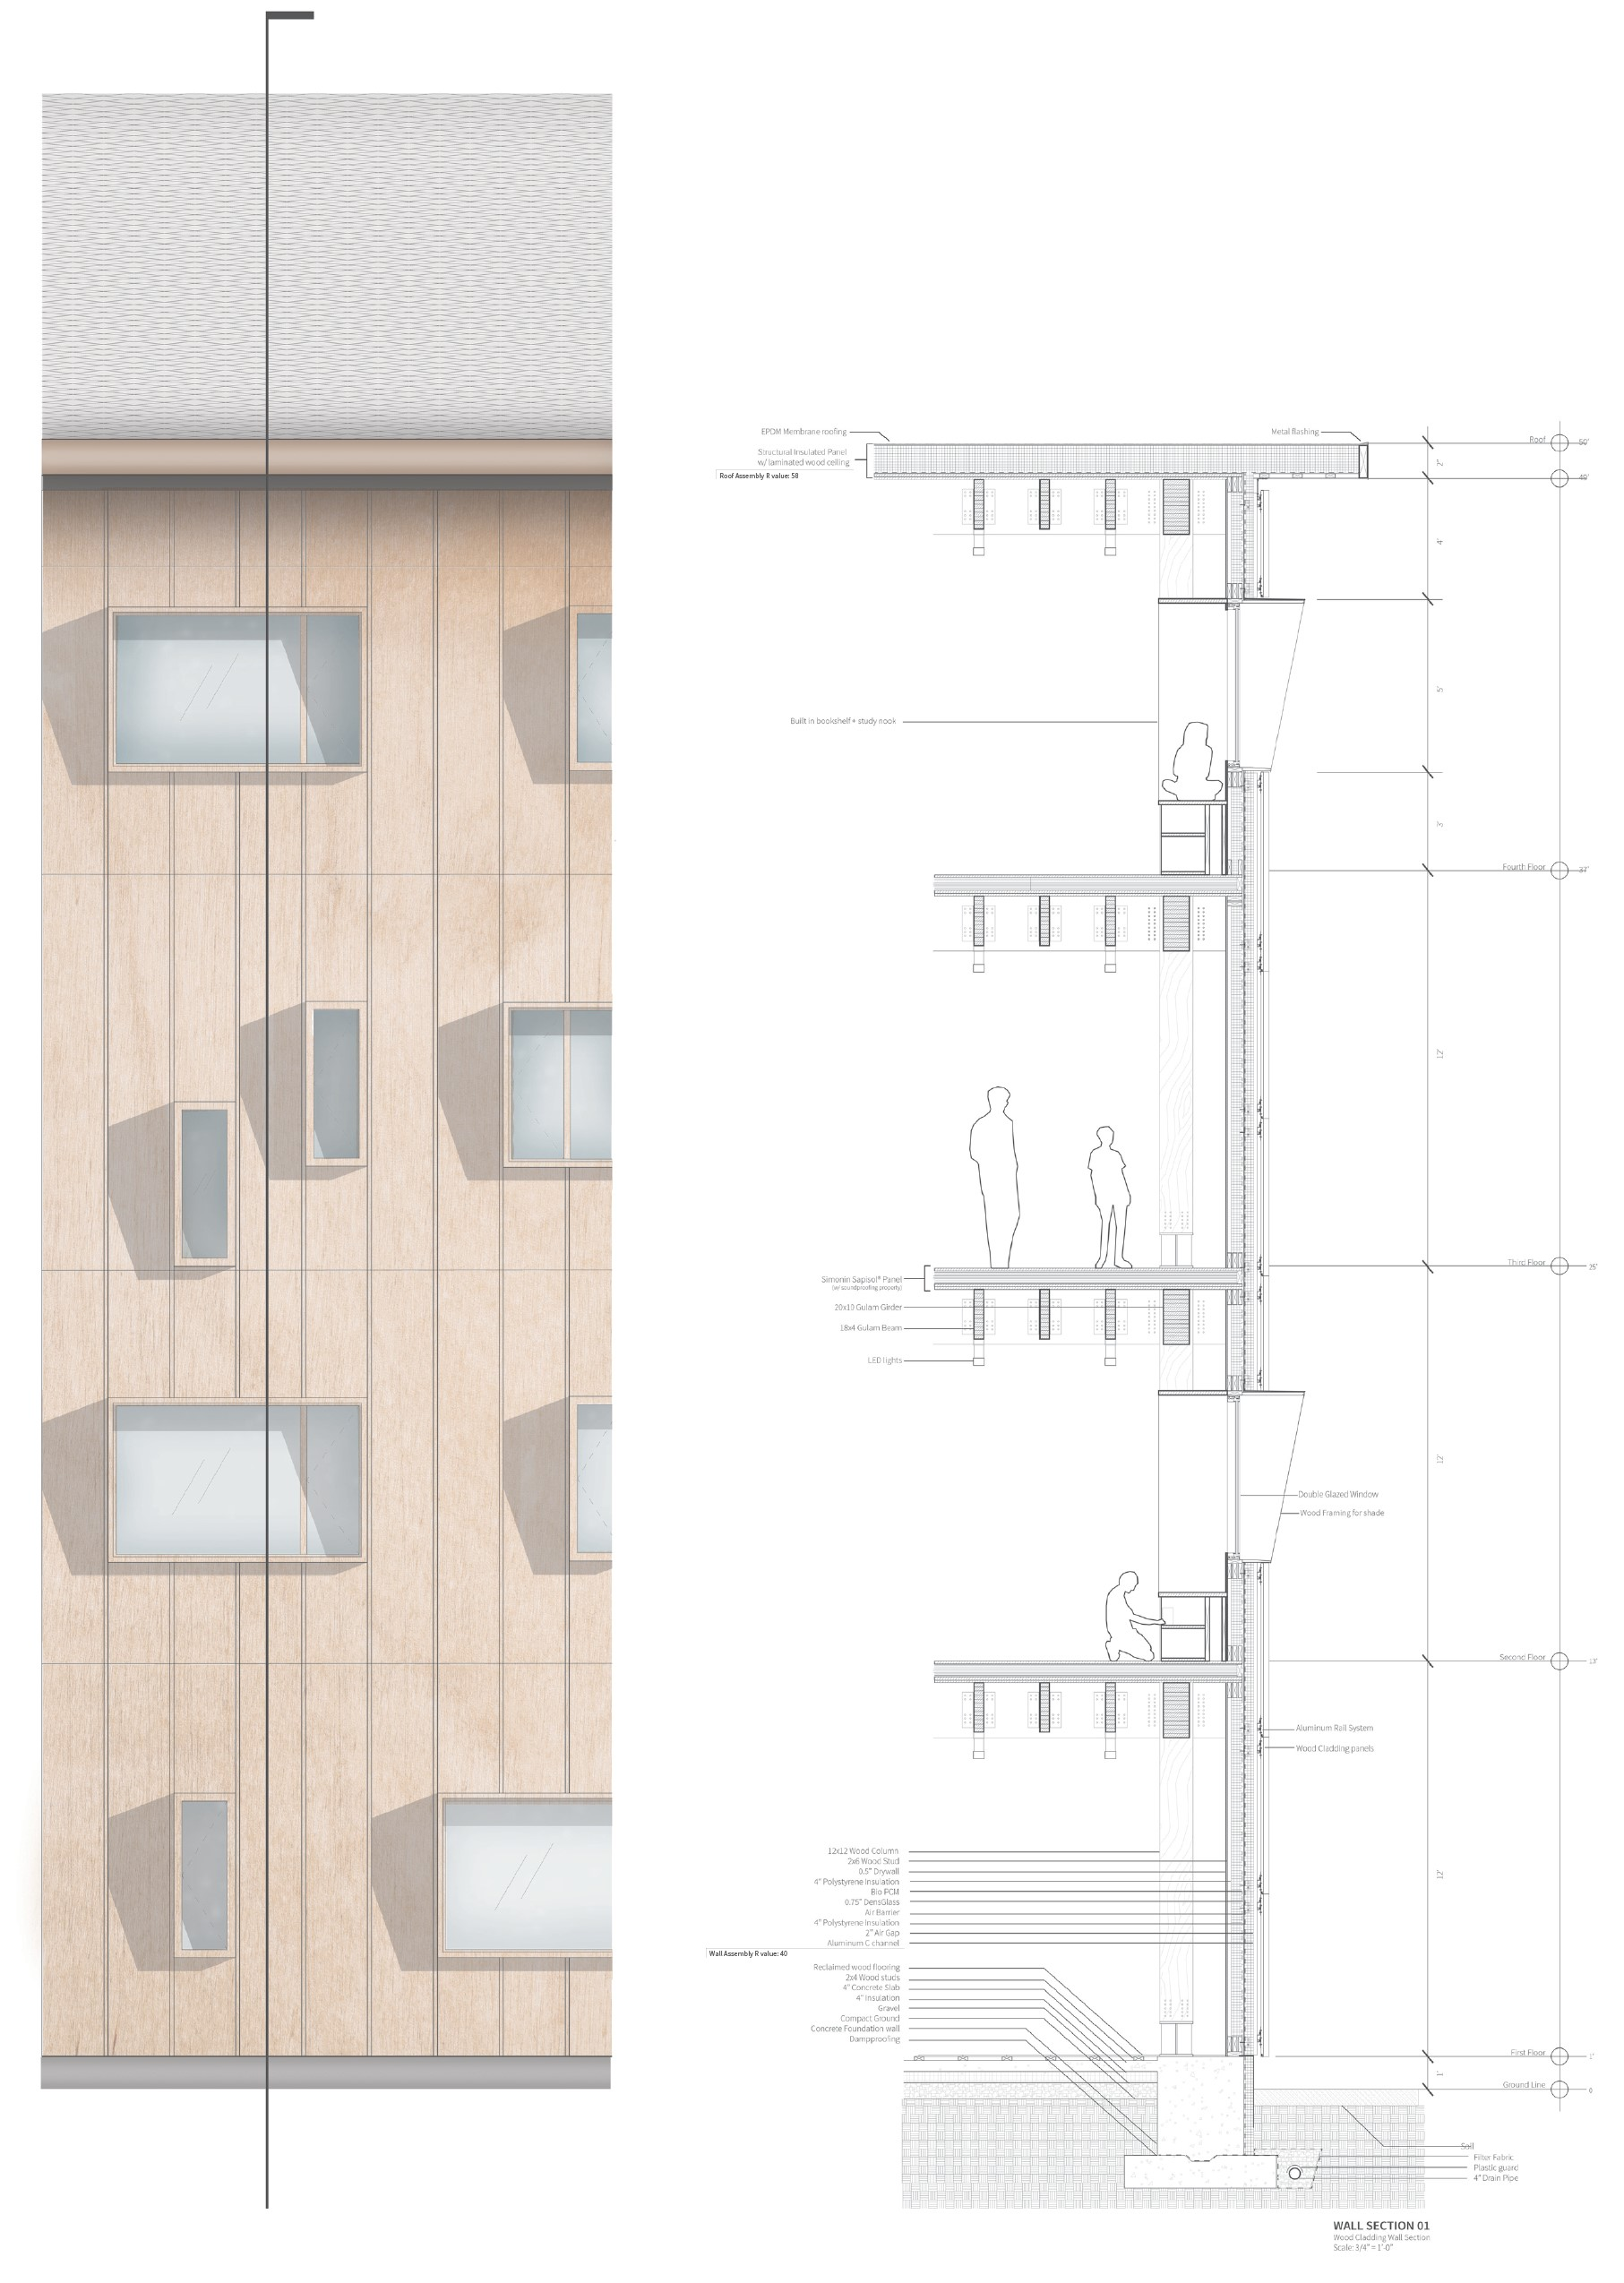 wall sections_1.jpg